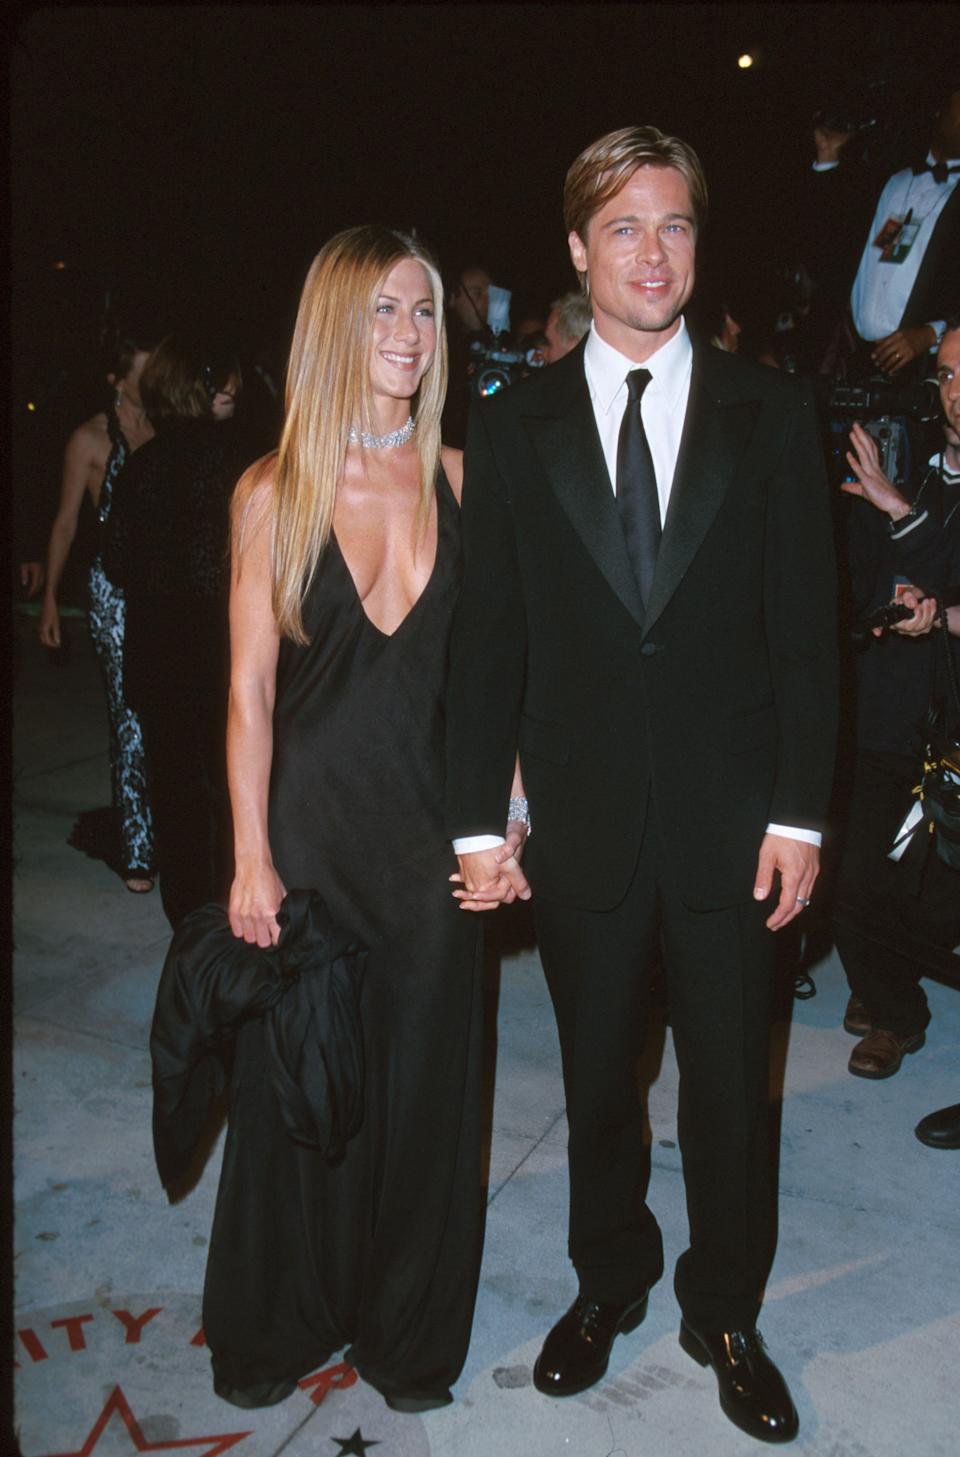 It was a new millennium and a new era for fashion as Aniston sent photographers into a frenzy at the 7th Annual Vanity Fair Oscar Party. (Photo by Jeff Vespa Archive/WireImage)